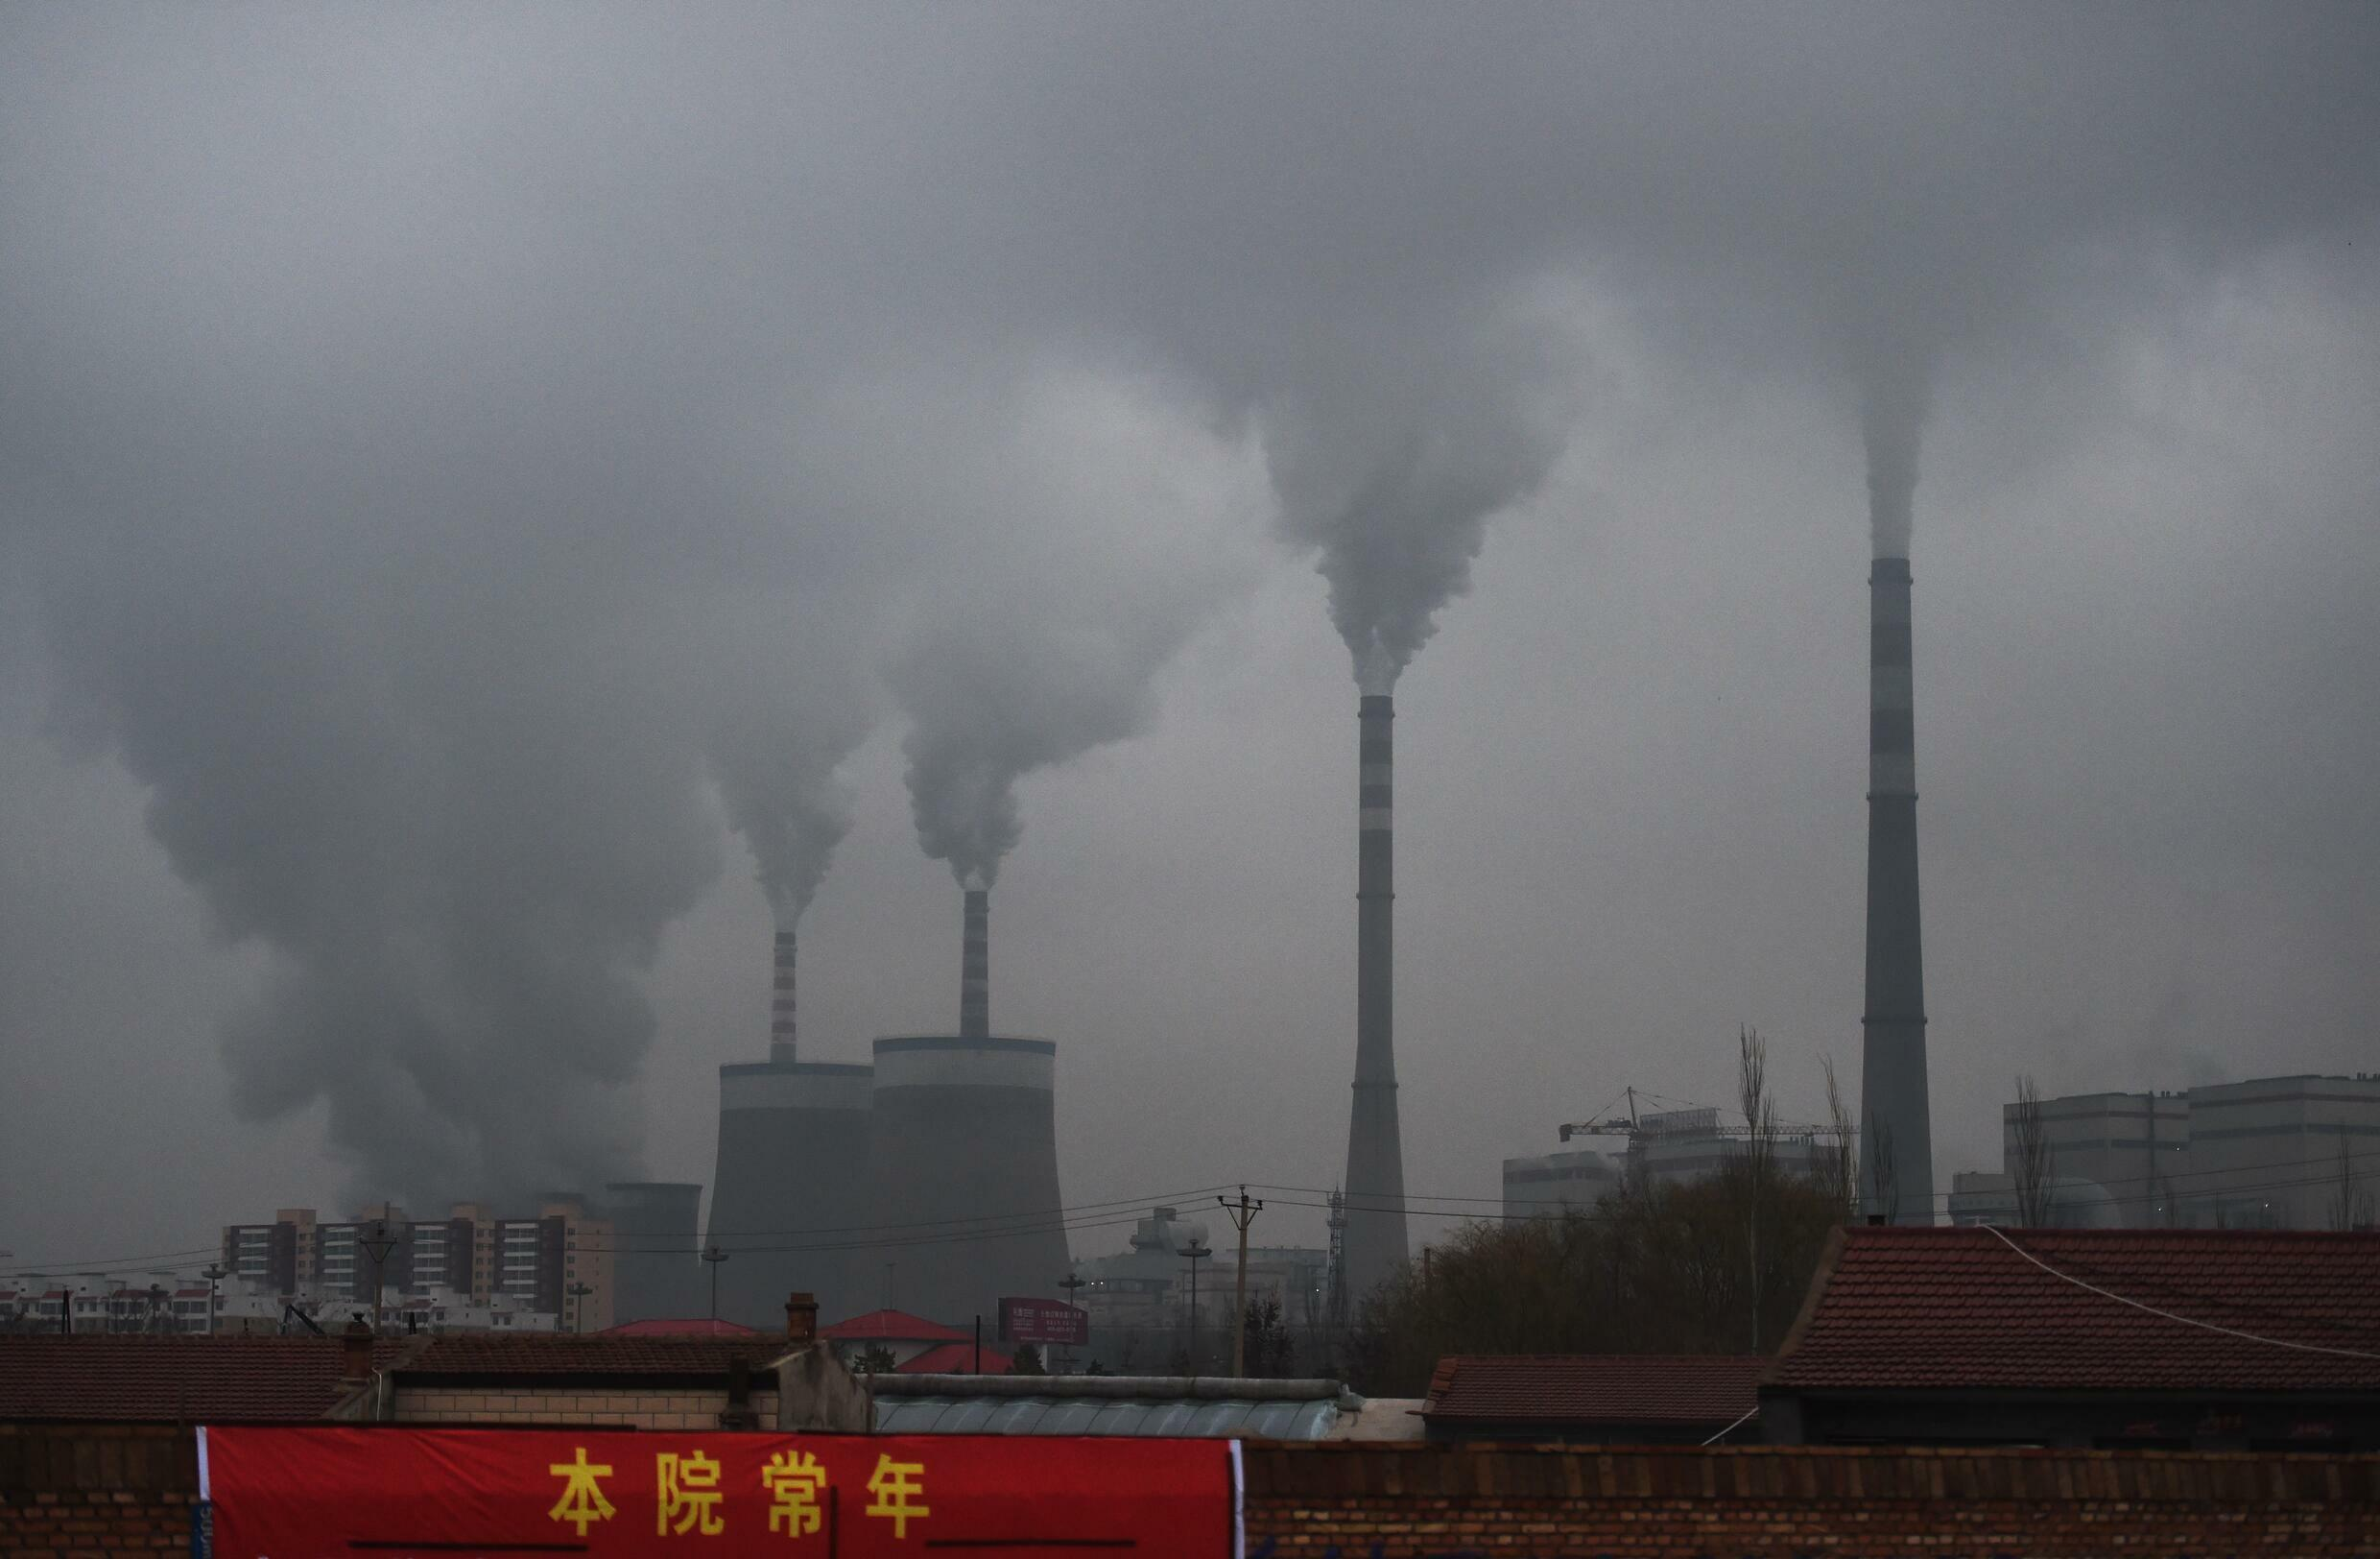 A coal-fired power plant near Datong, China's Shanxi Province on November 19, 2015